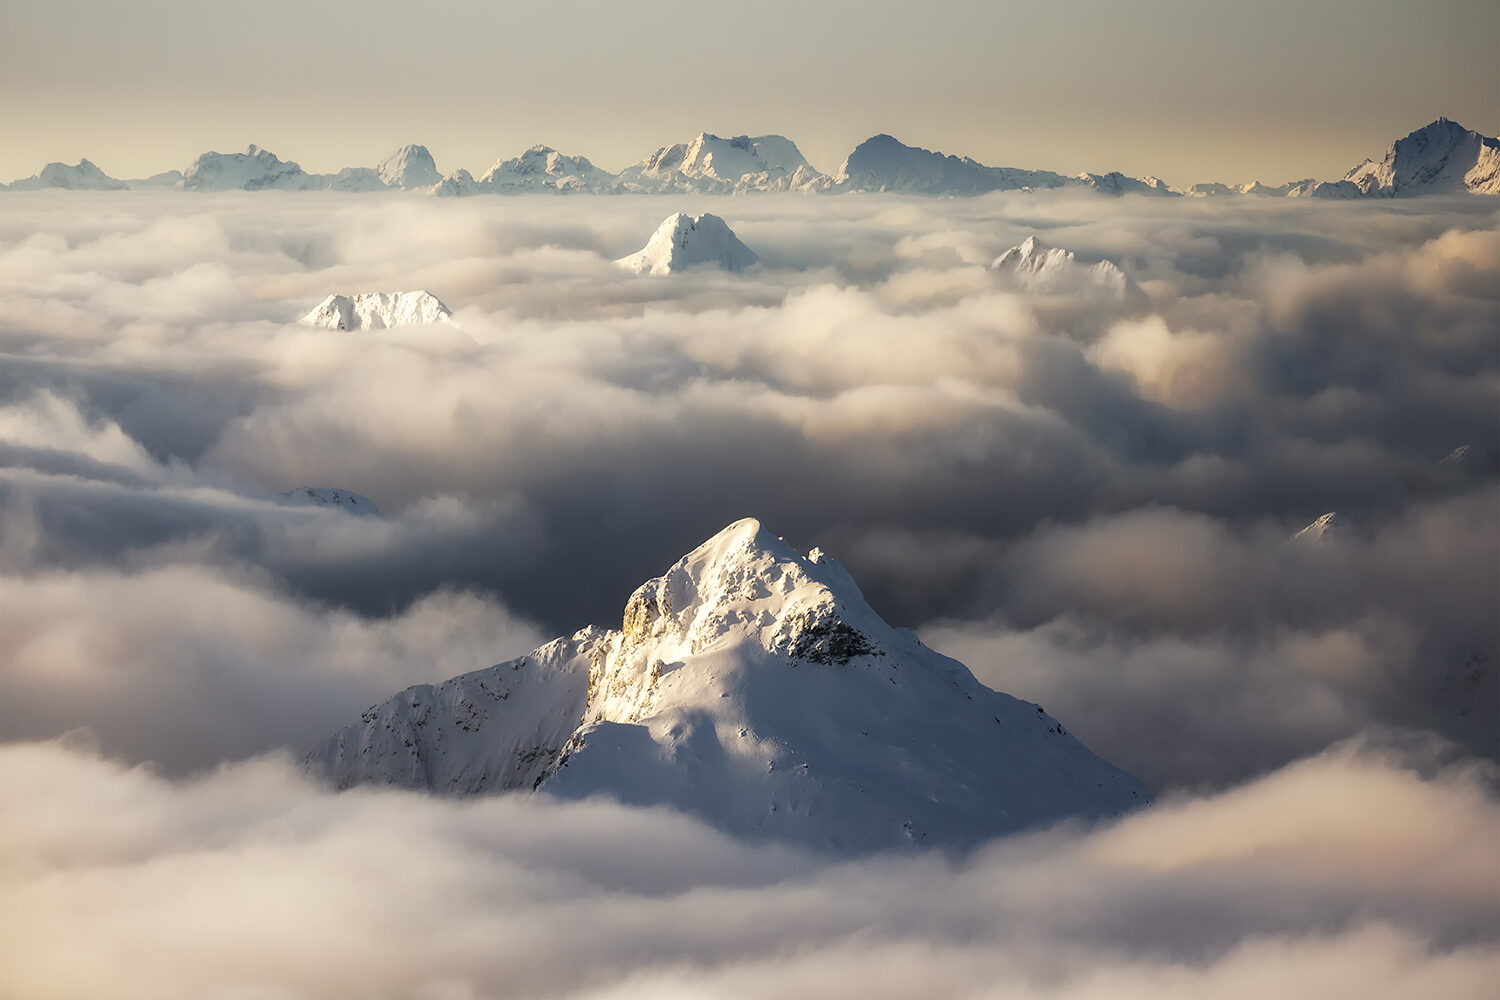 Mountain peaks above a sea of cloud